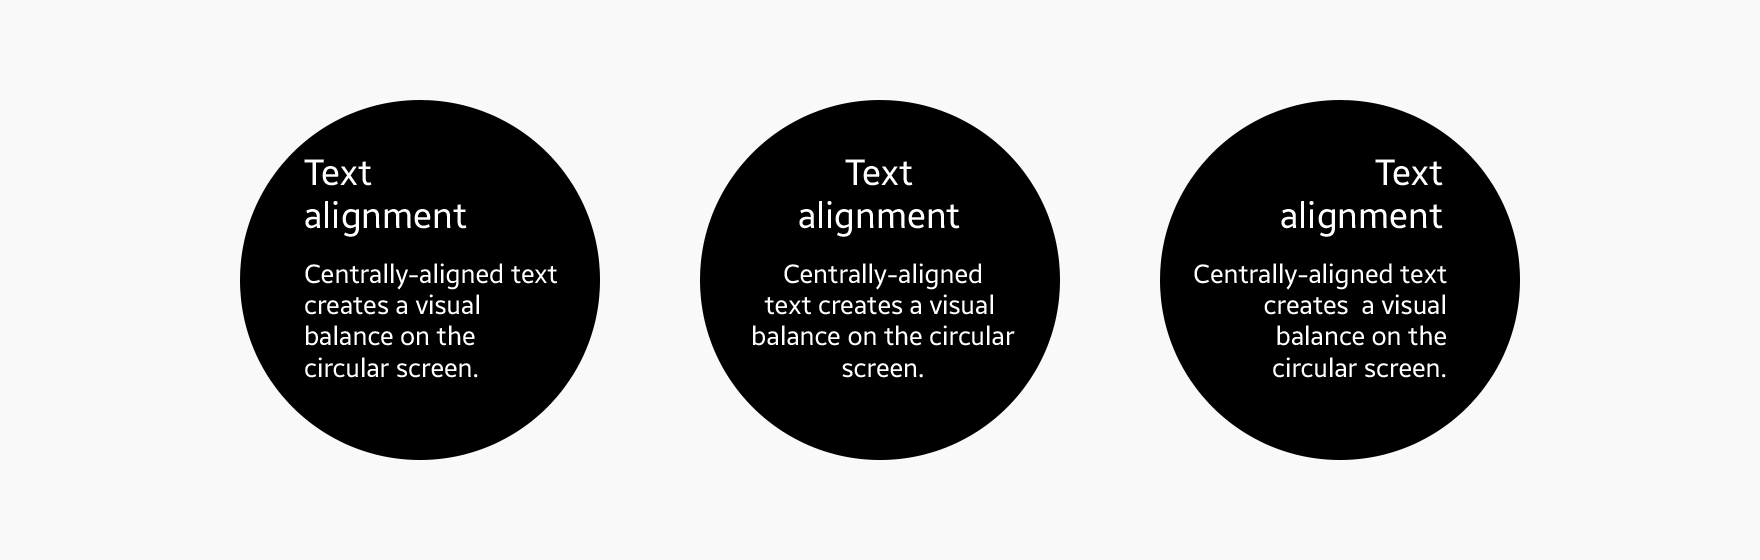 We recommend aligning text to the left or in the center when the text is long.